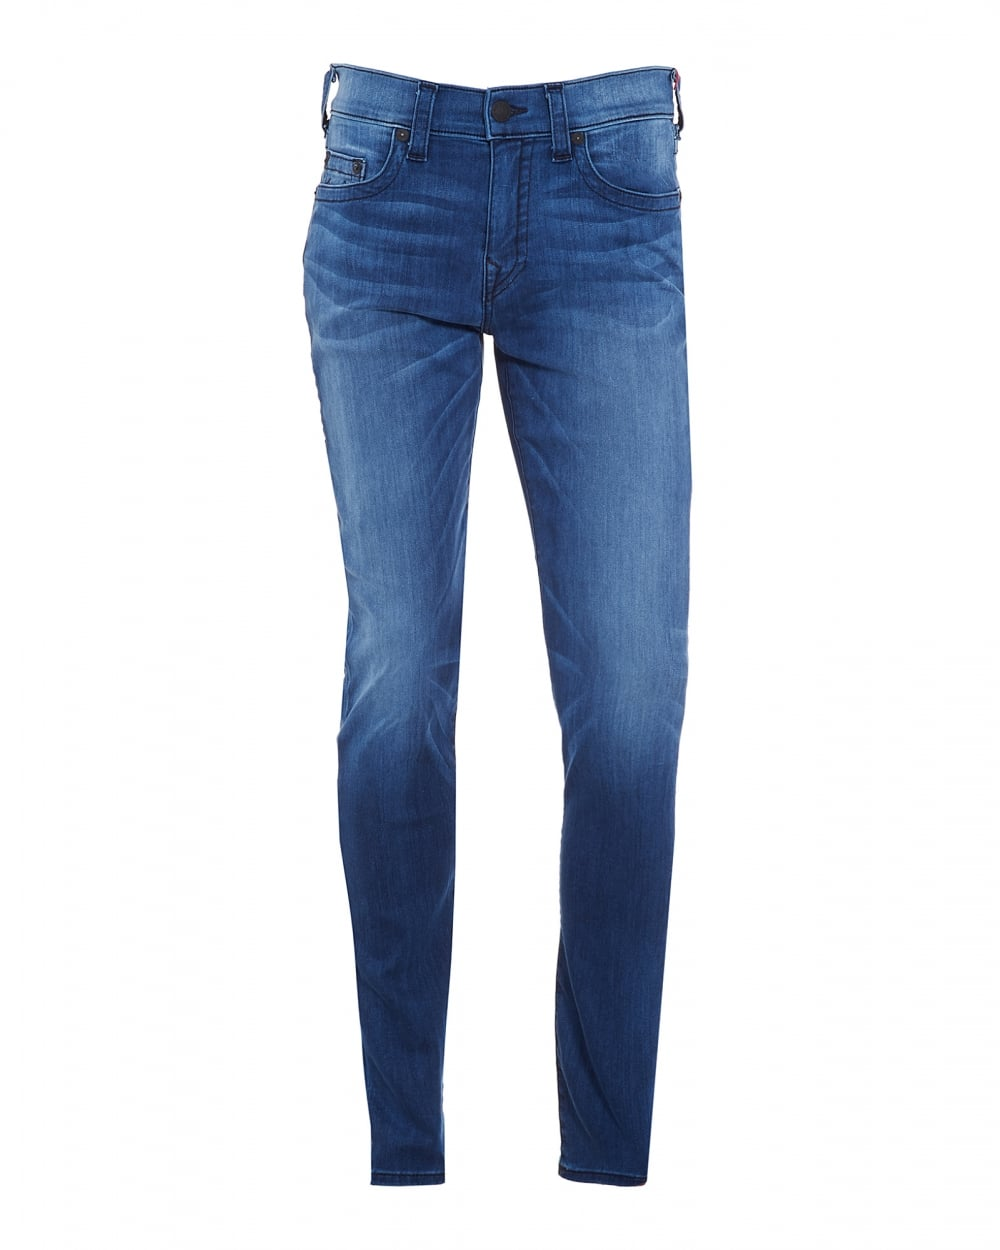 0ac57b06a5e7 True Religion Jeans Mens Rocco Relaxed Fit Mid Whisker Skinny Jeans